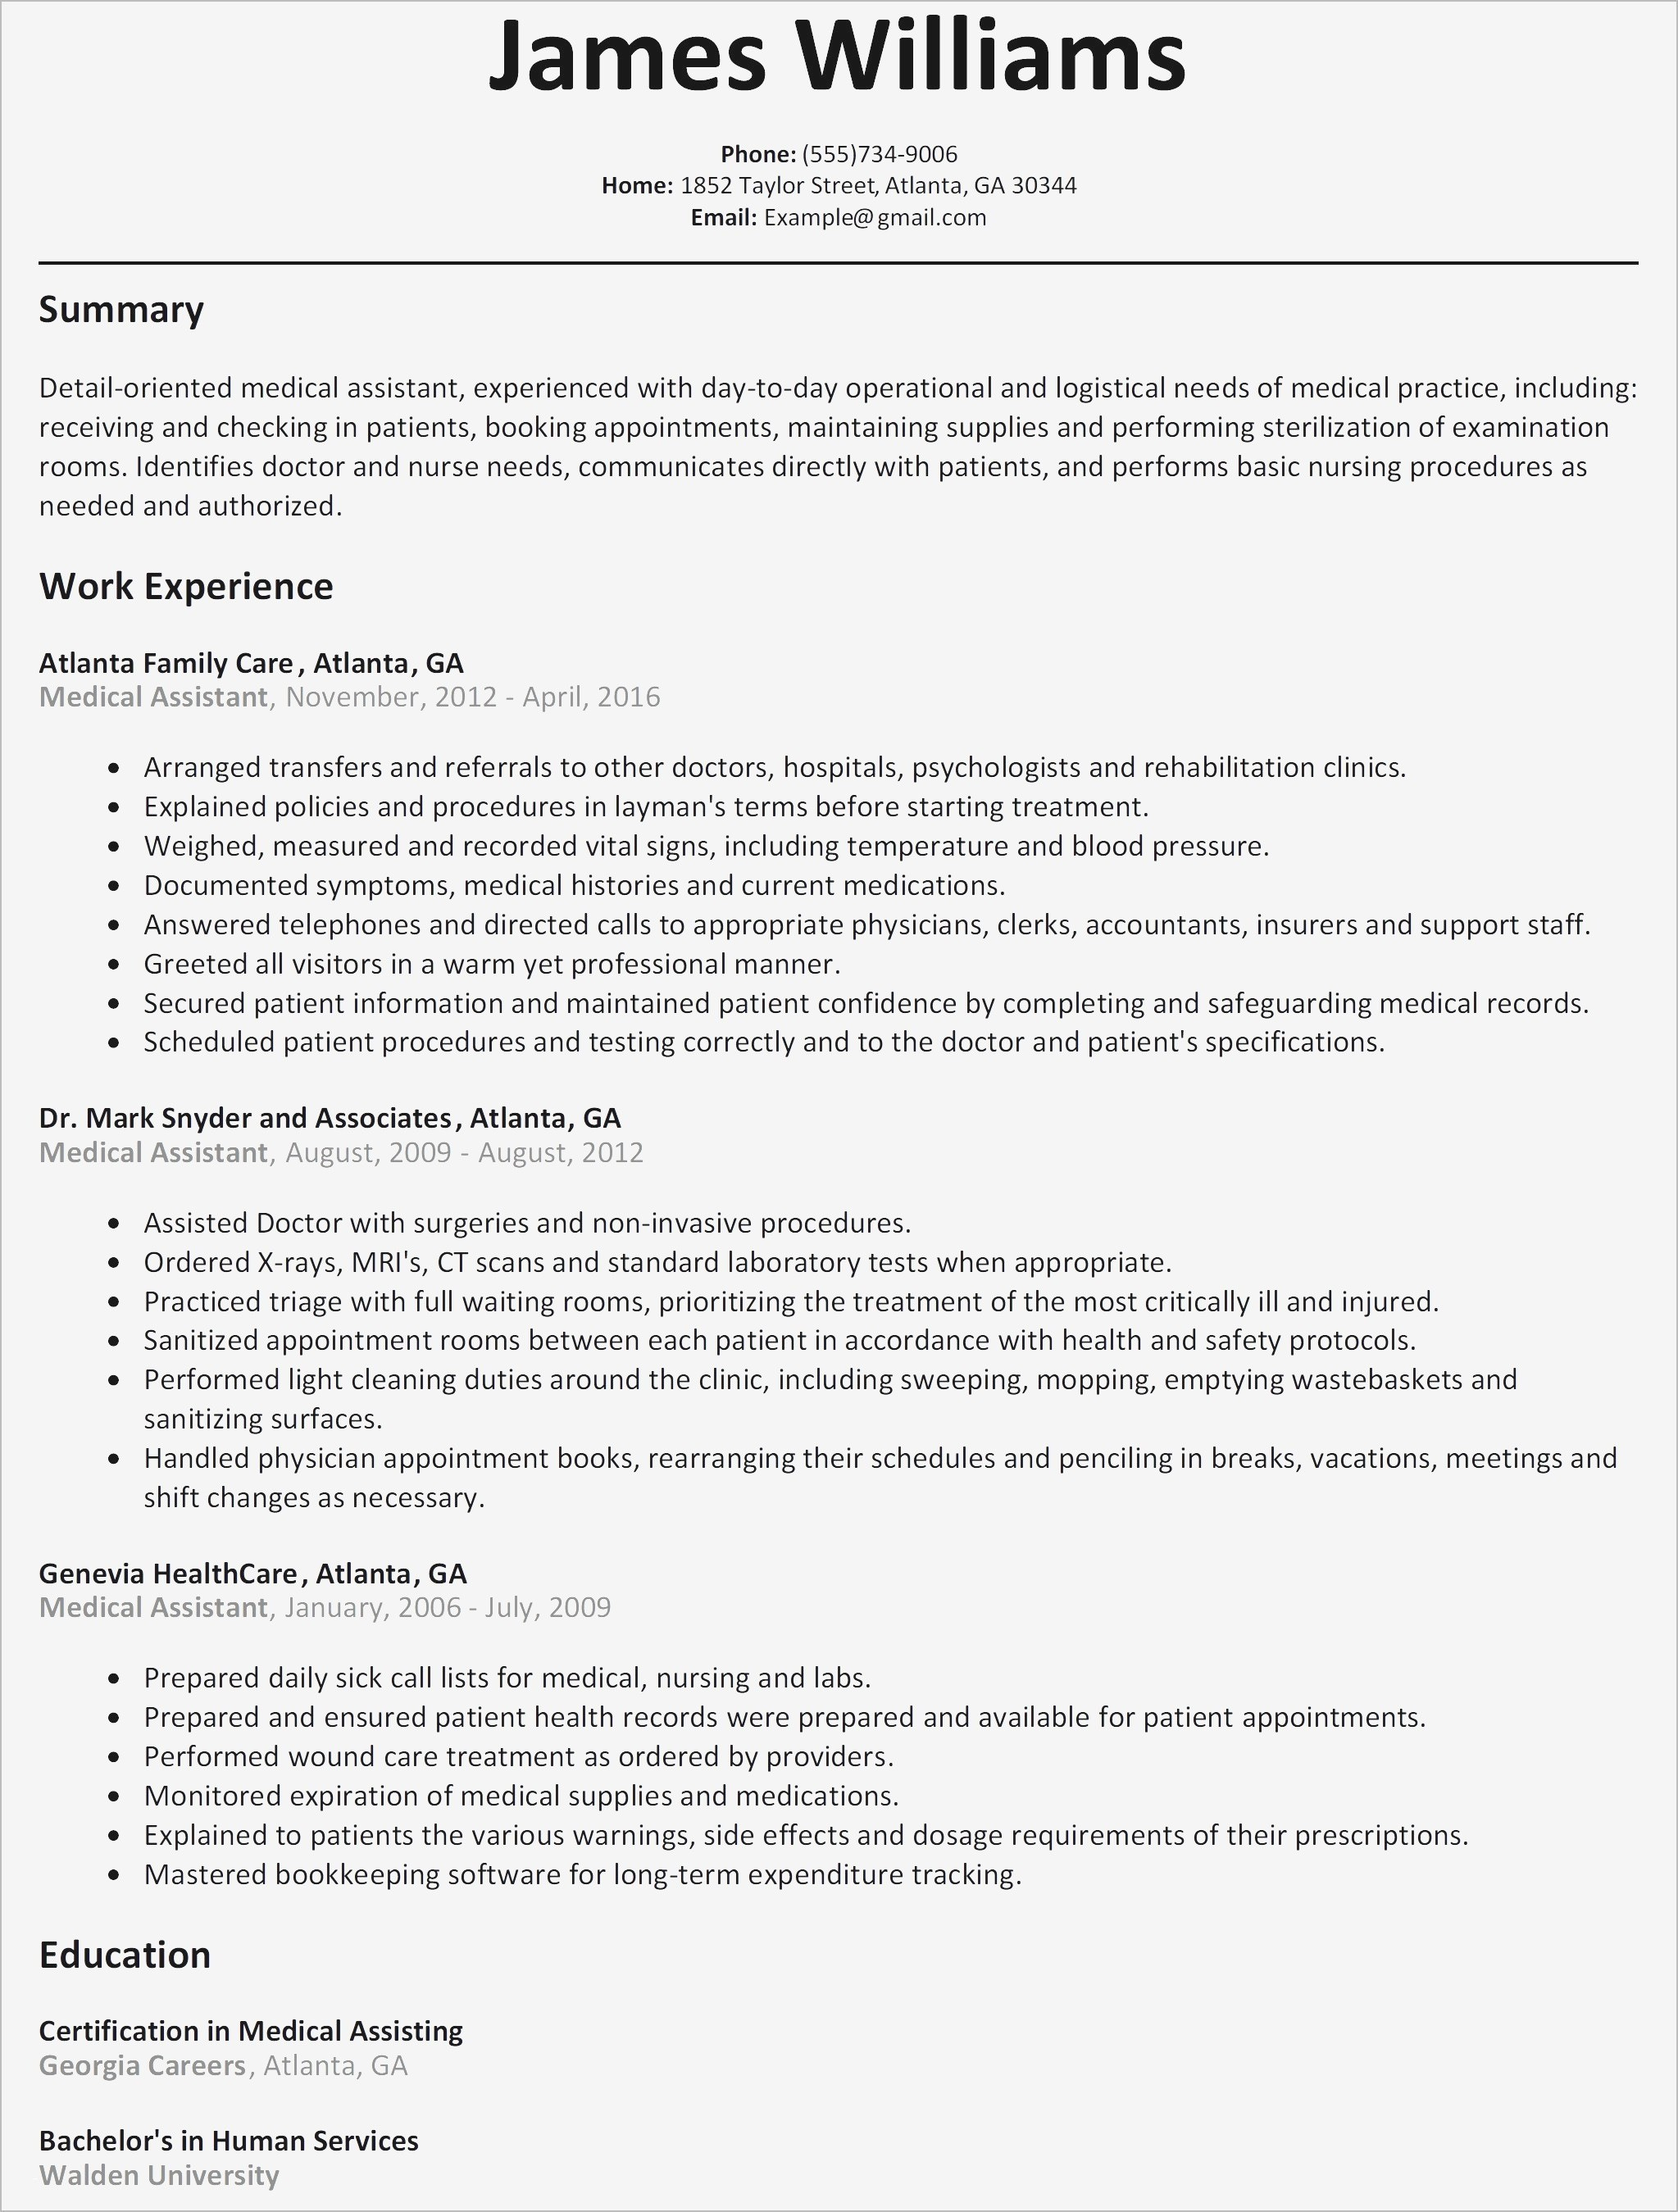 Child Care Resume Template - Elegant Resume Template Best Resume Medical assistant Elegant